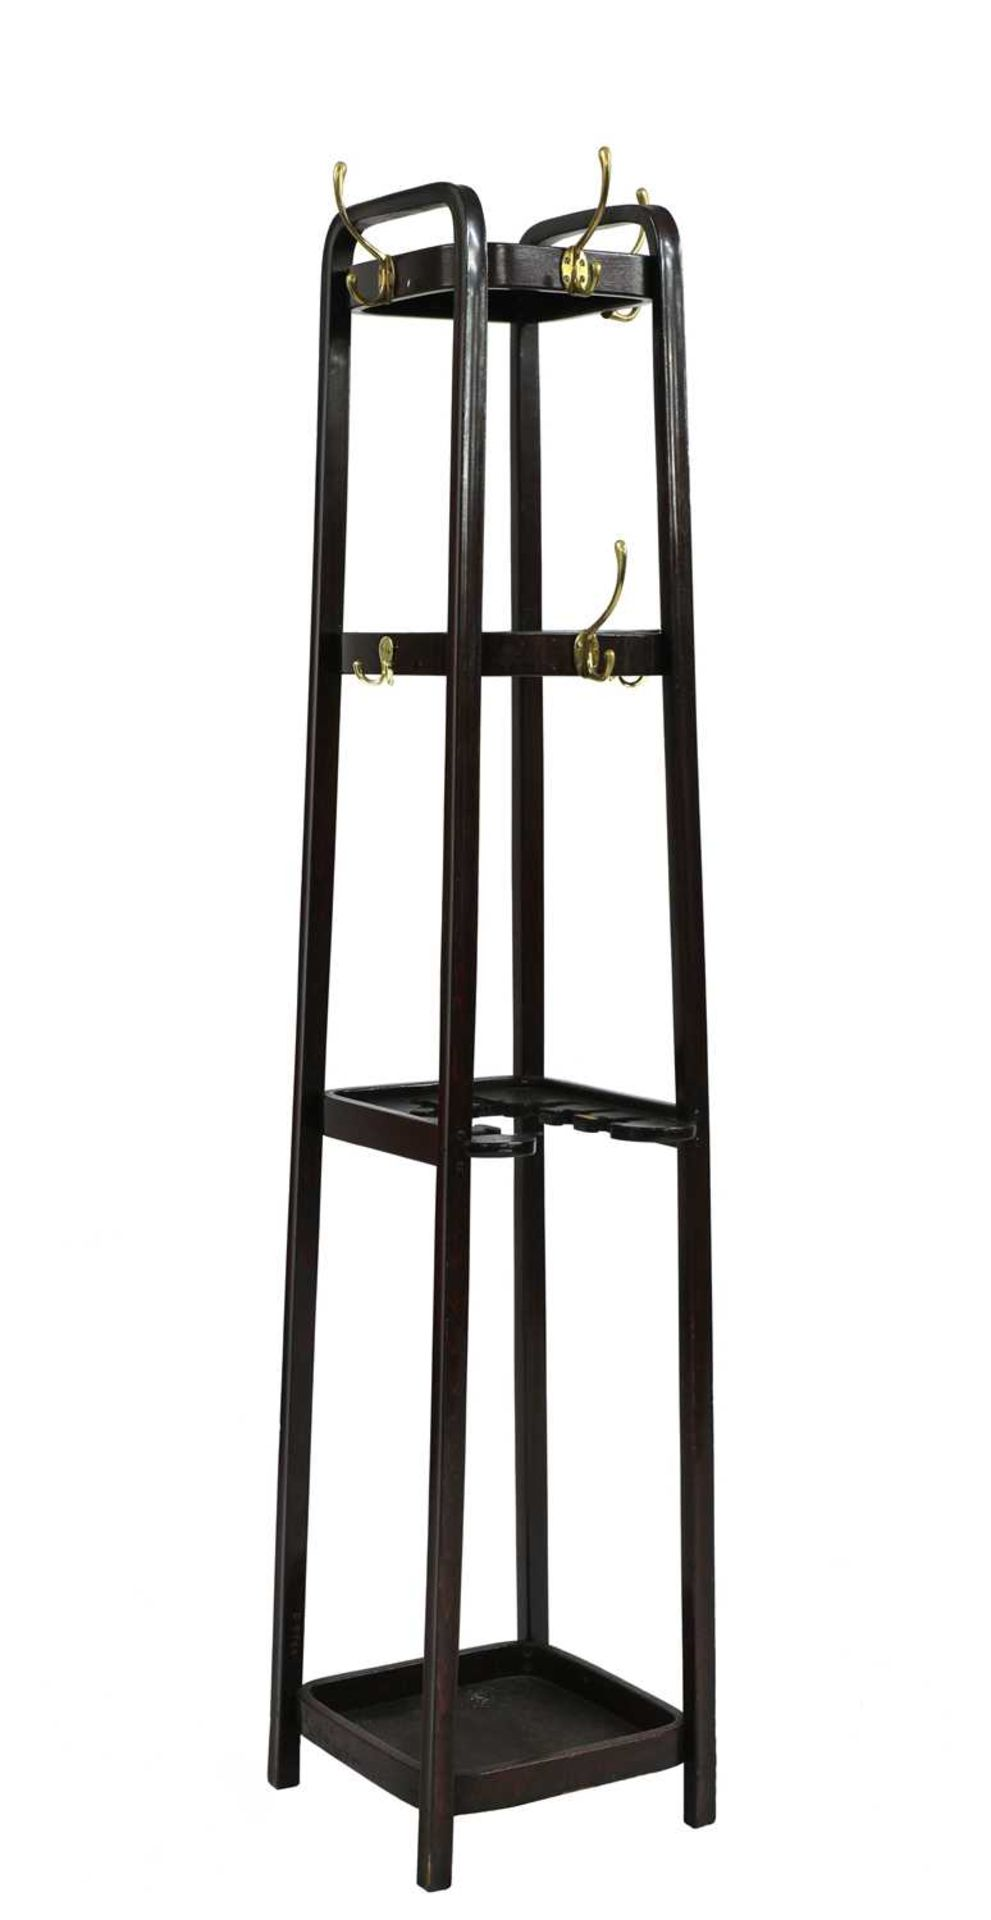 A Thonet coat stand, - Image 3 of 3